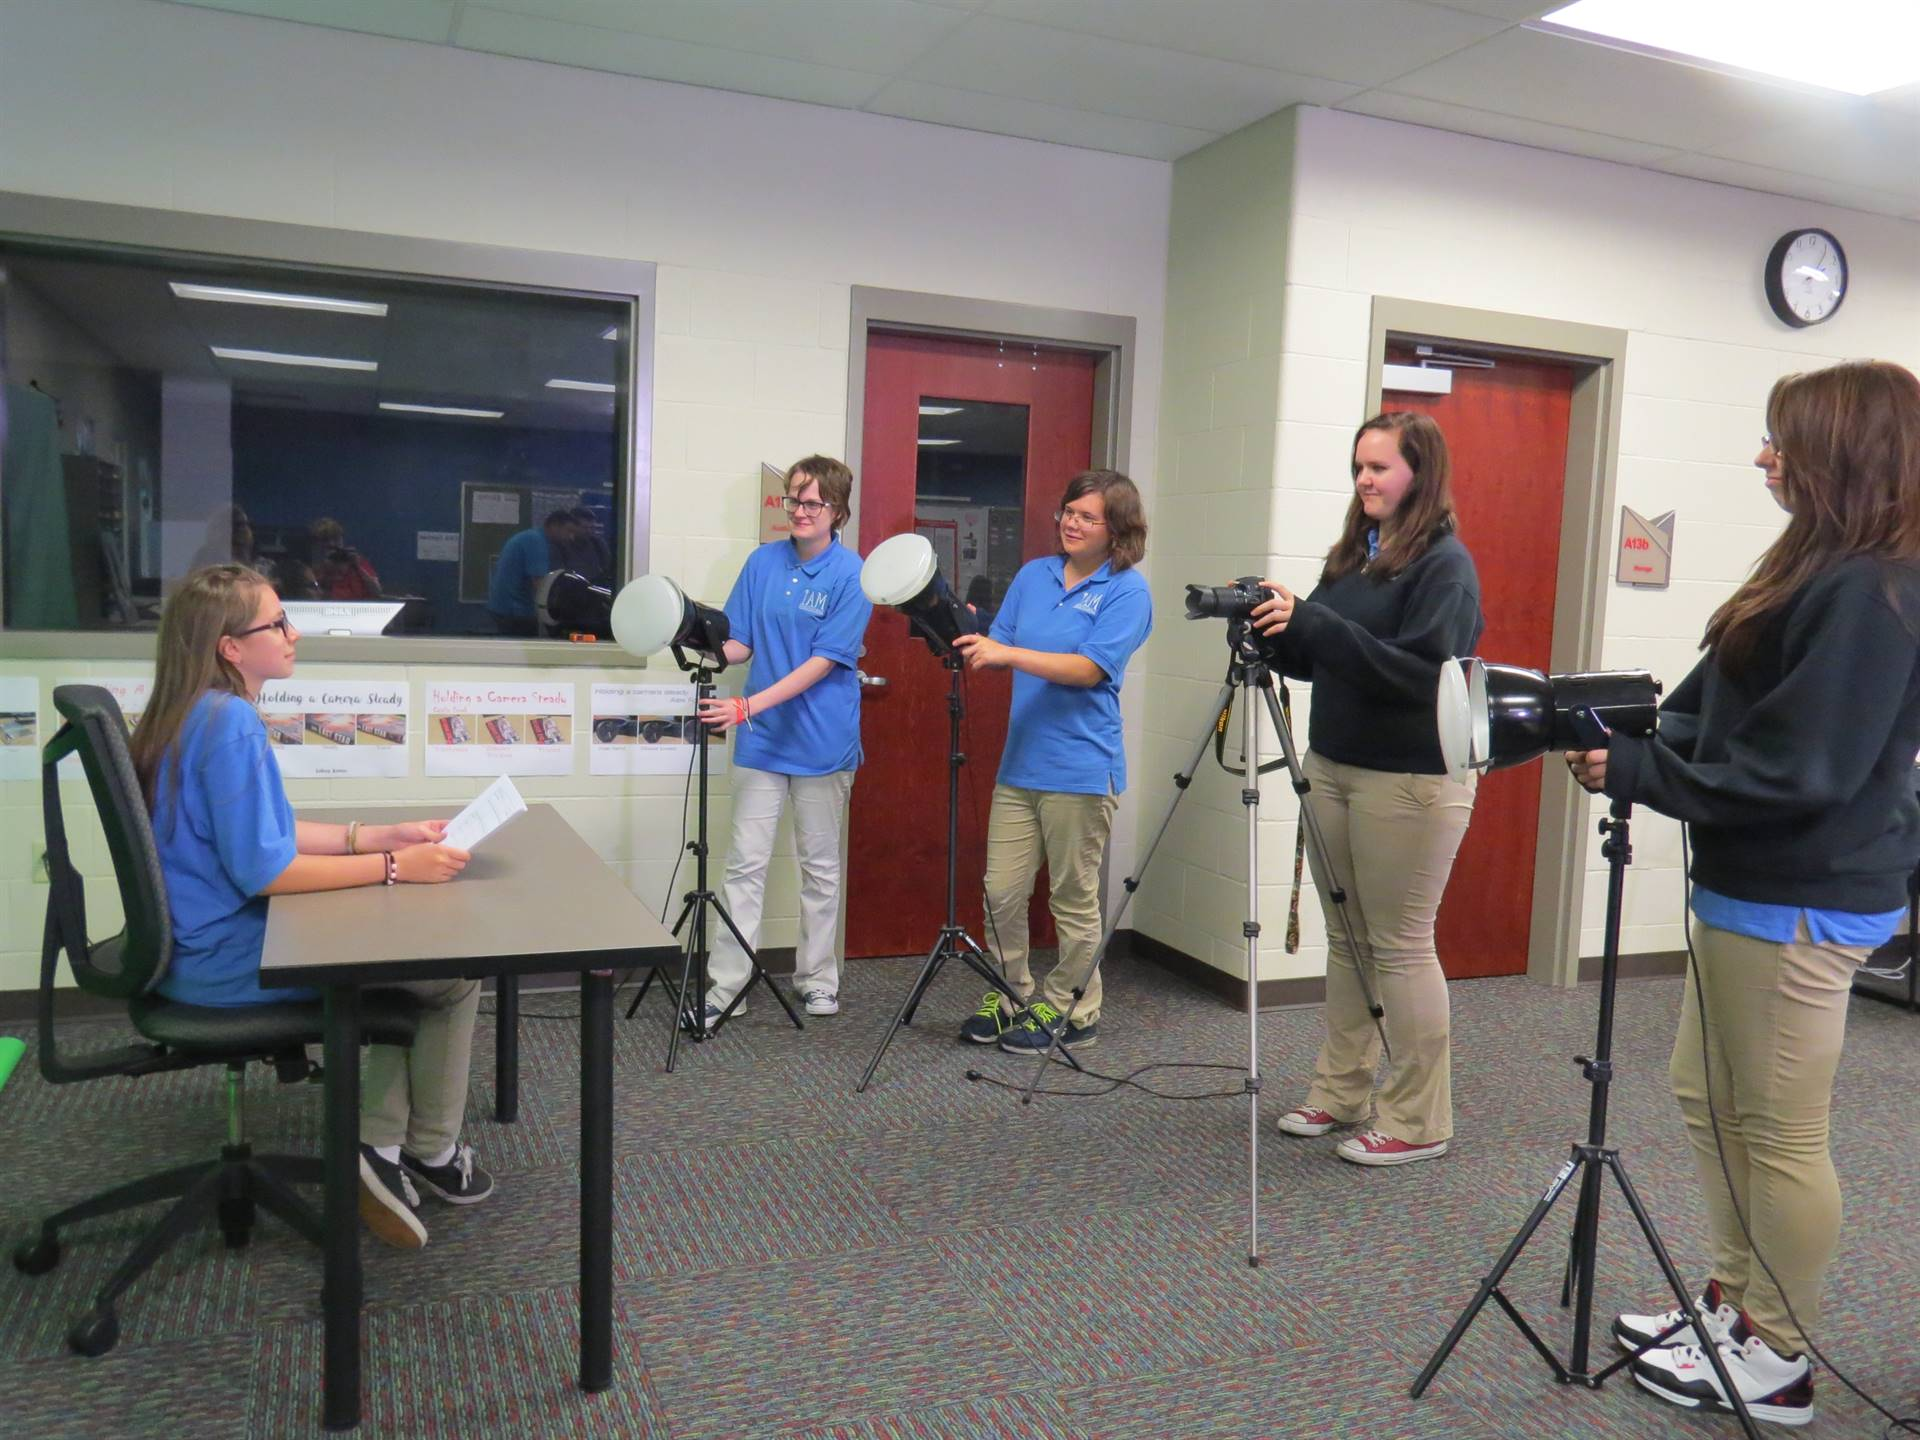 Five female Interactive Media students setting up a newscast using lights and green screen